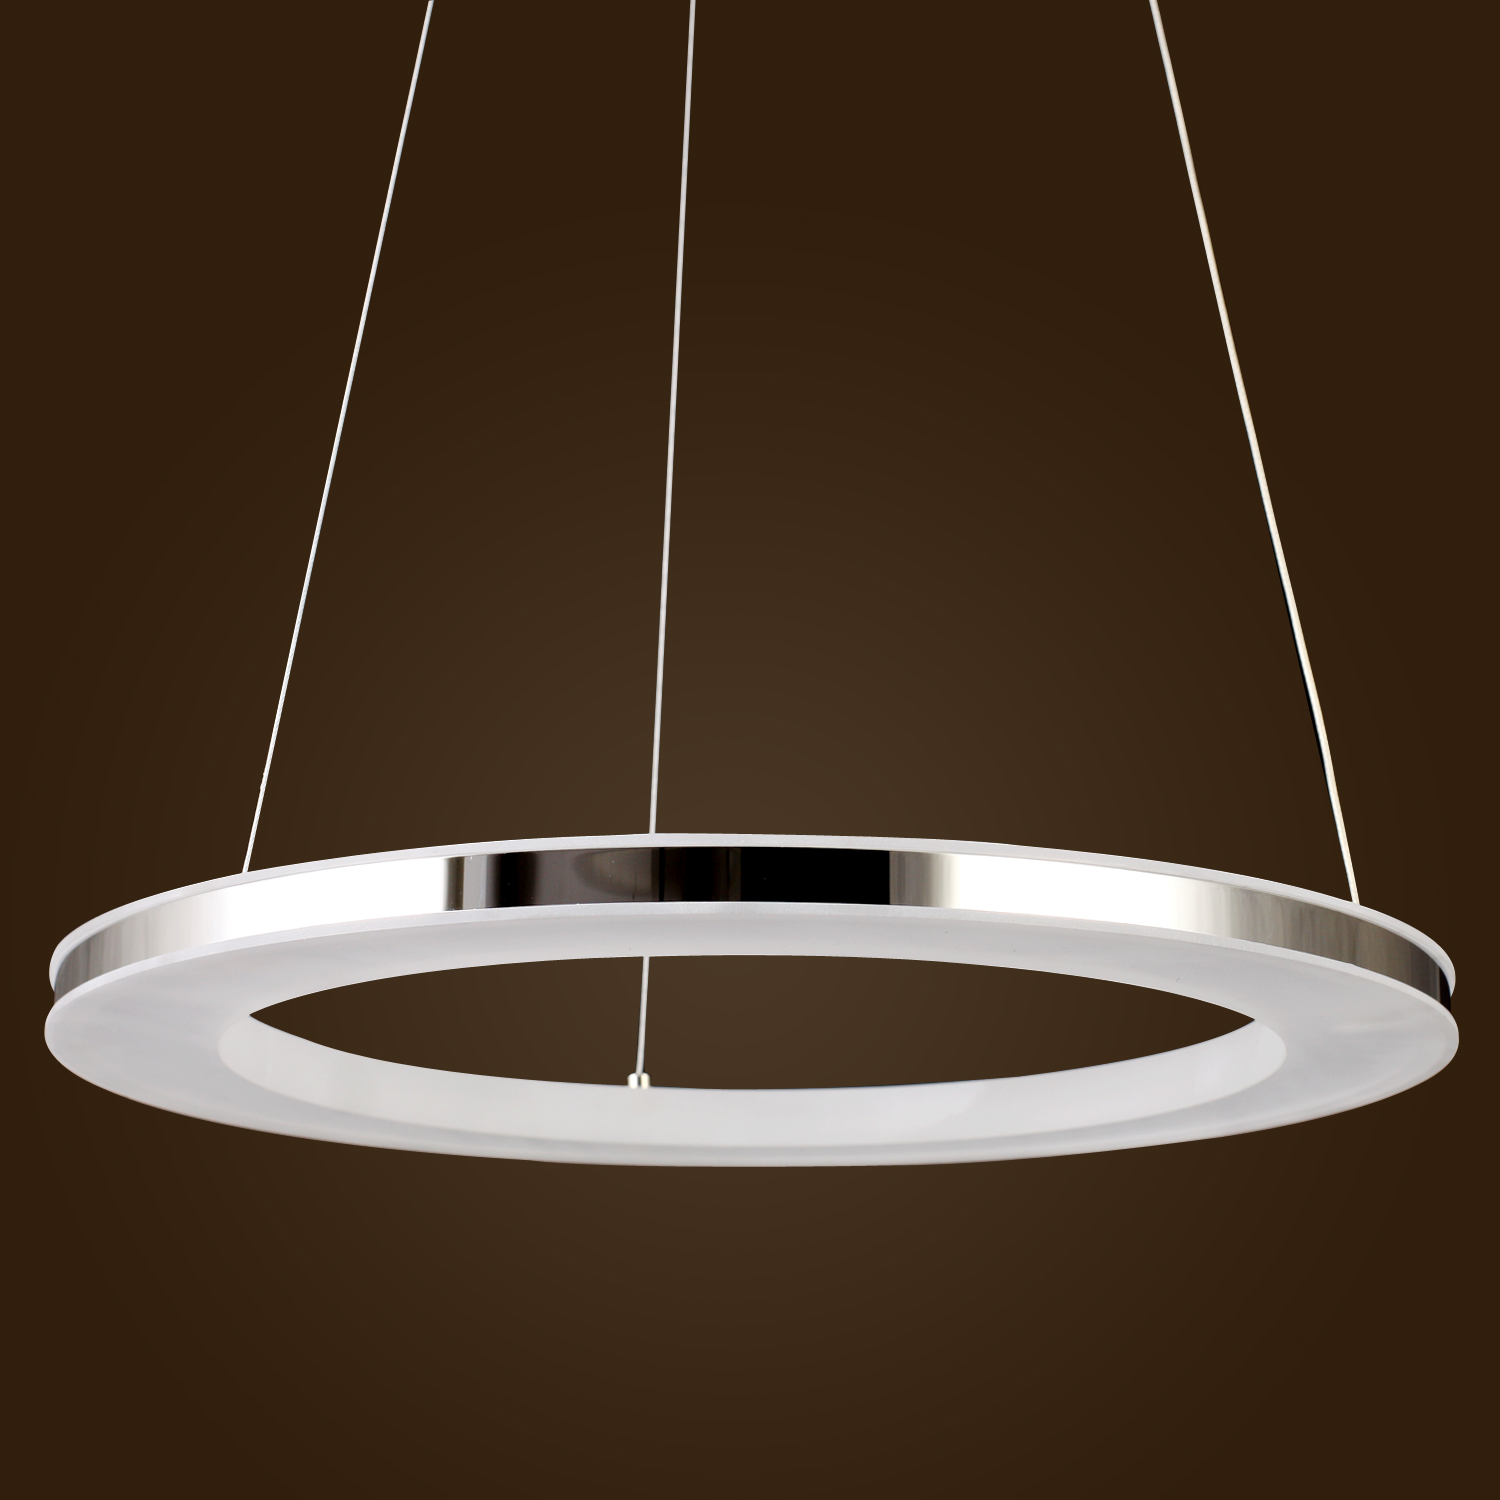 Led Lighting Fixtures : LED Ring Chandelier Pendant Lamp Ceiling Light Lighting Fixtures ...